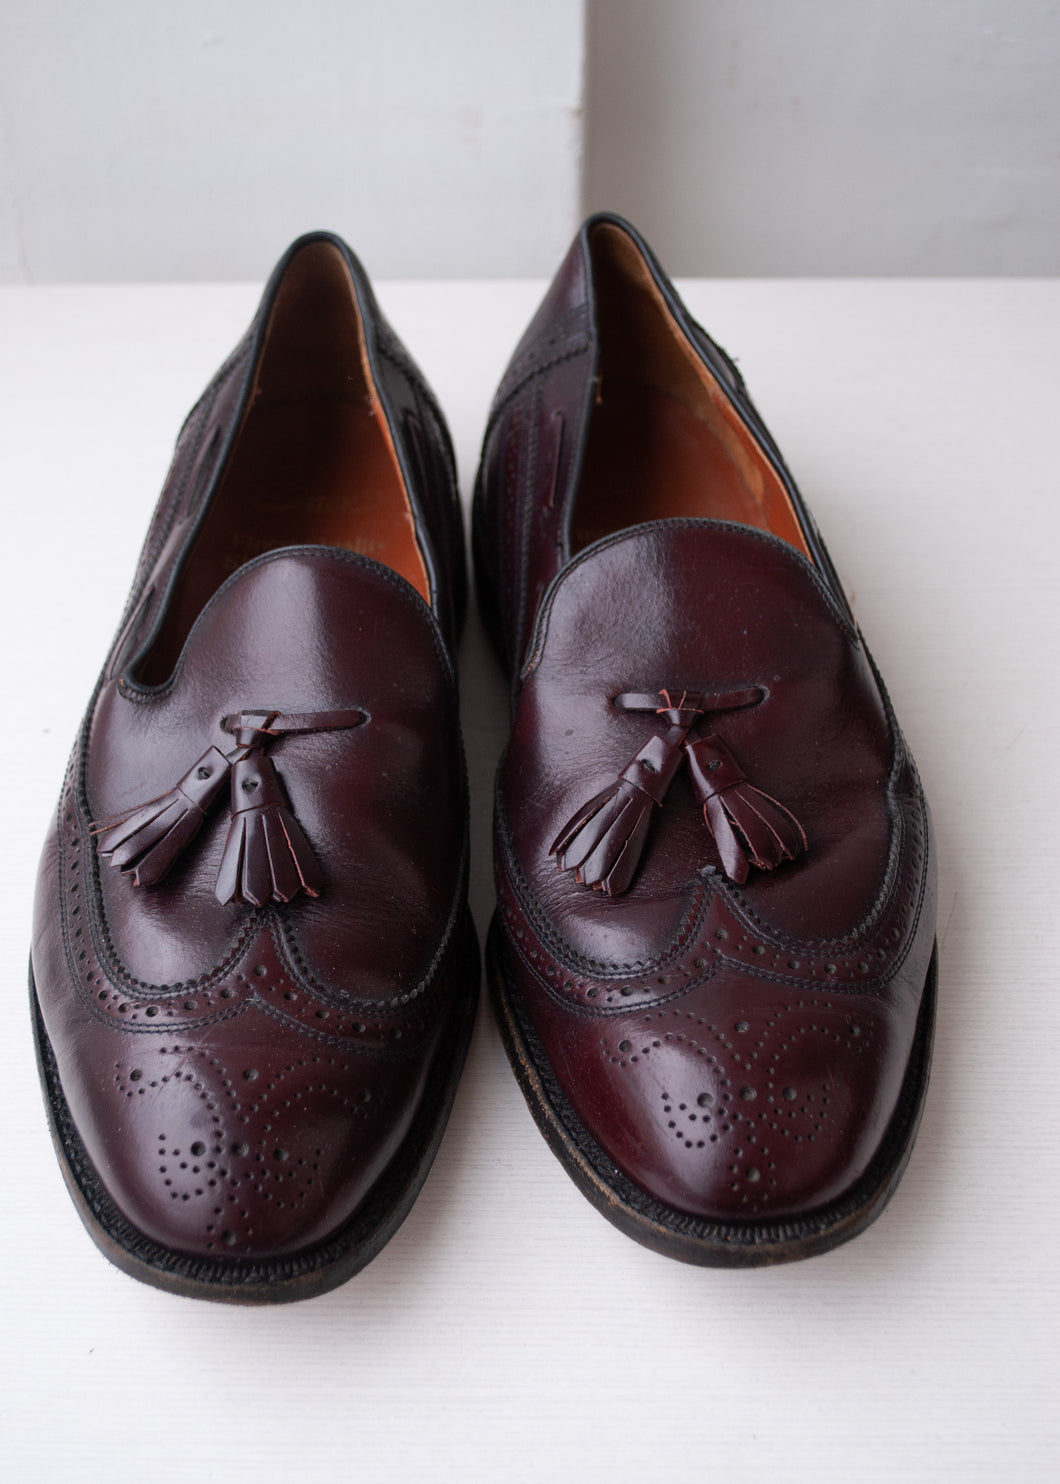 Oxblood Dack's Brogue Tasseled Loafers, Size 10.5